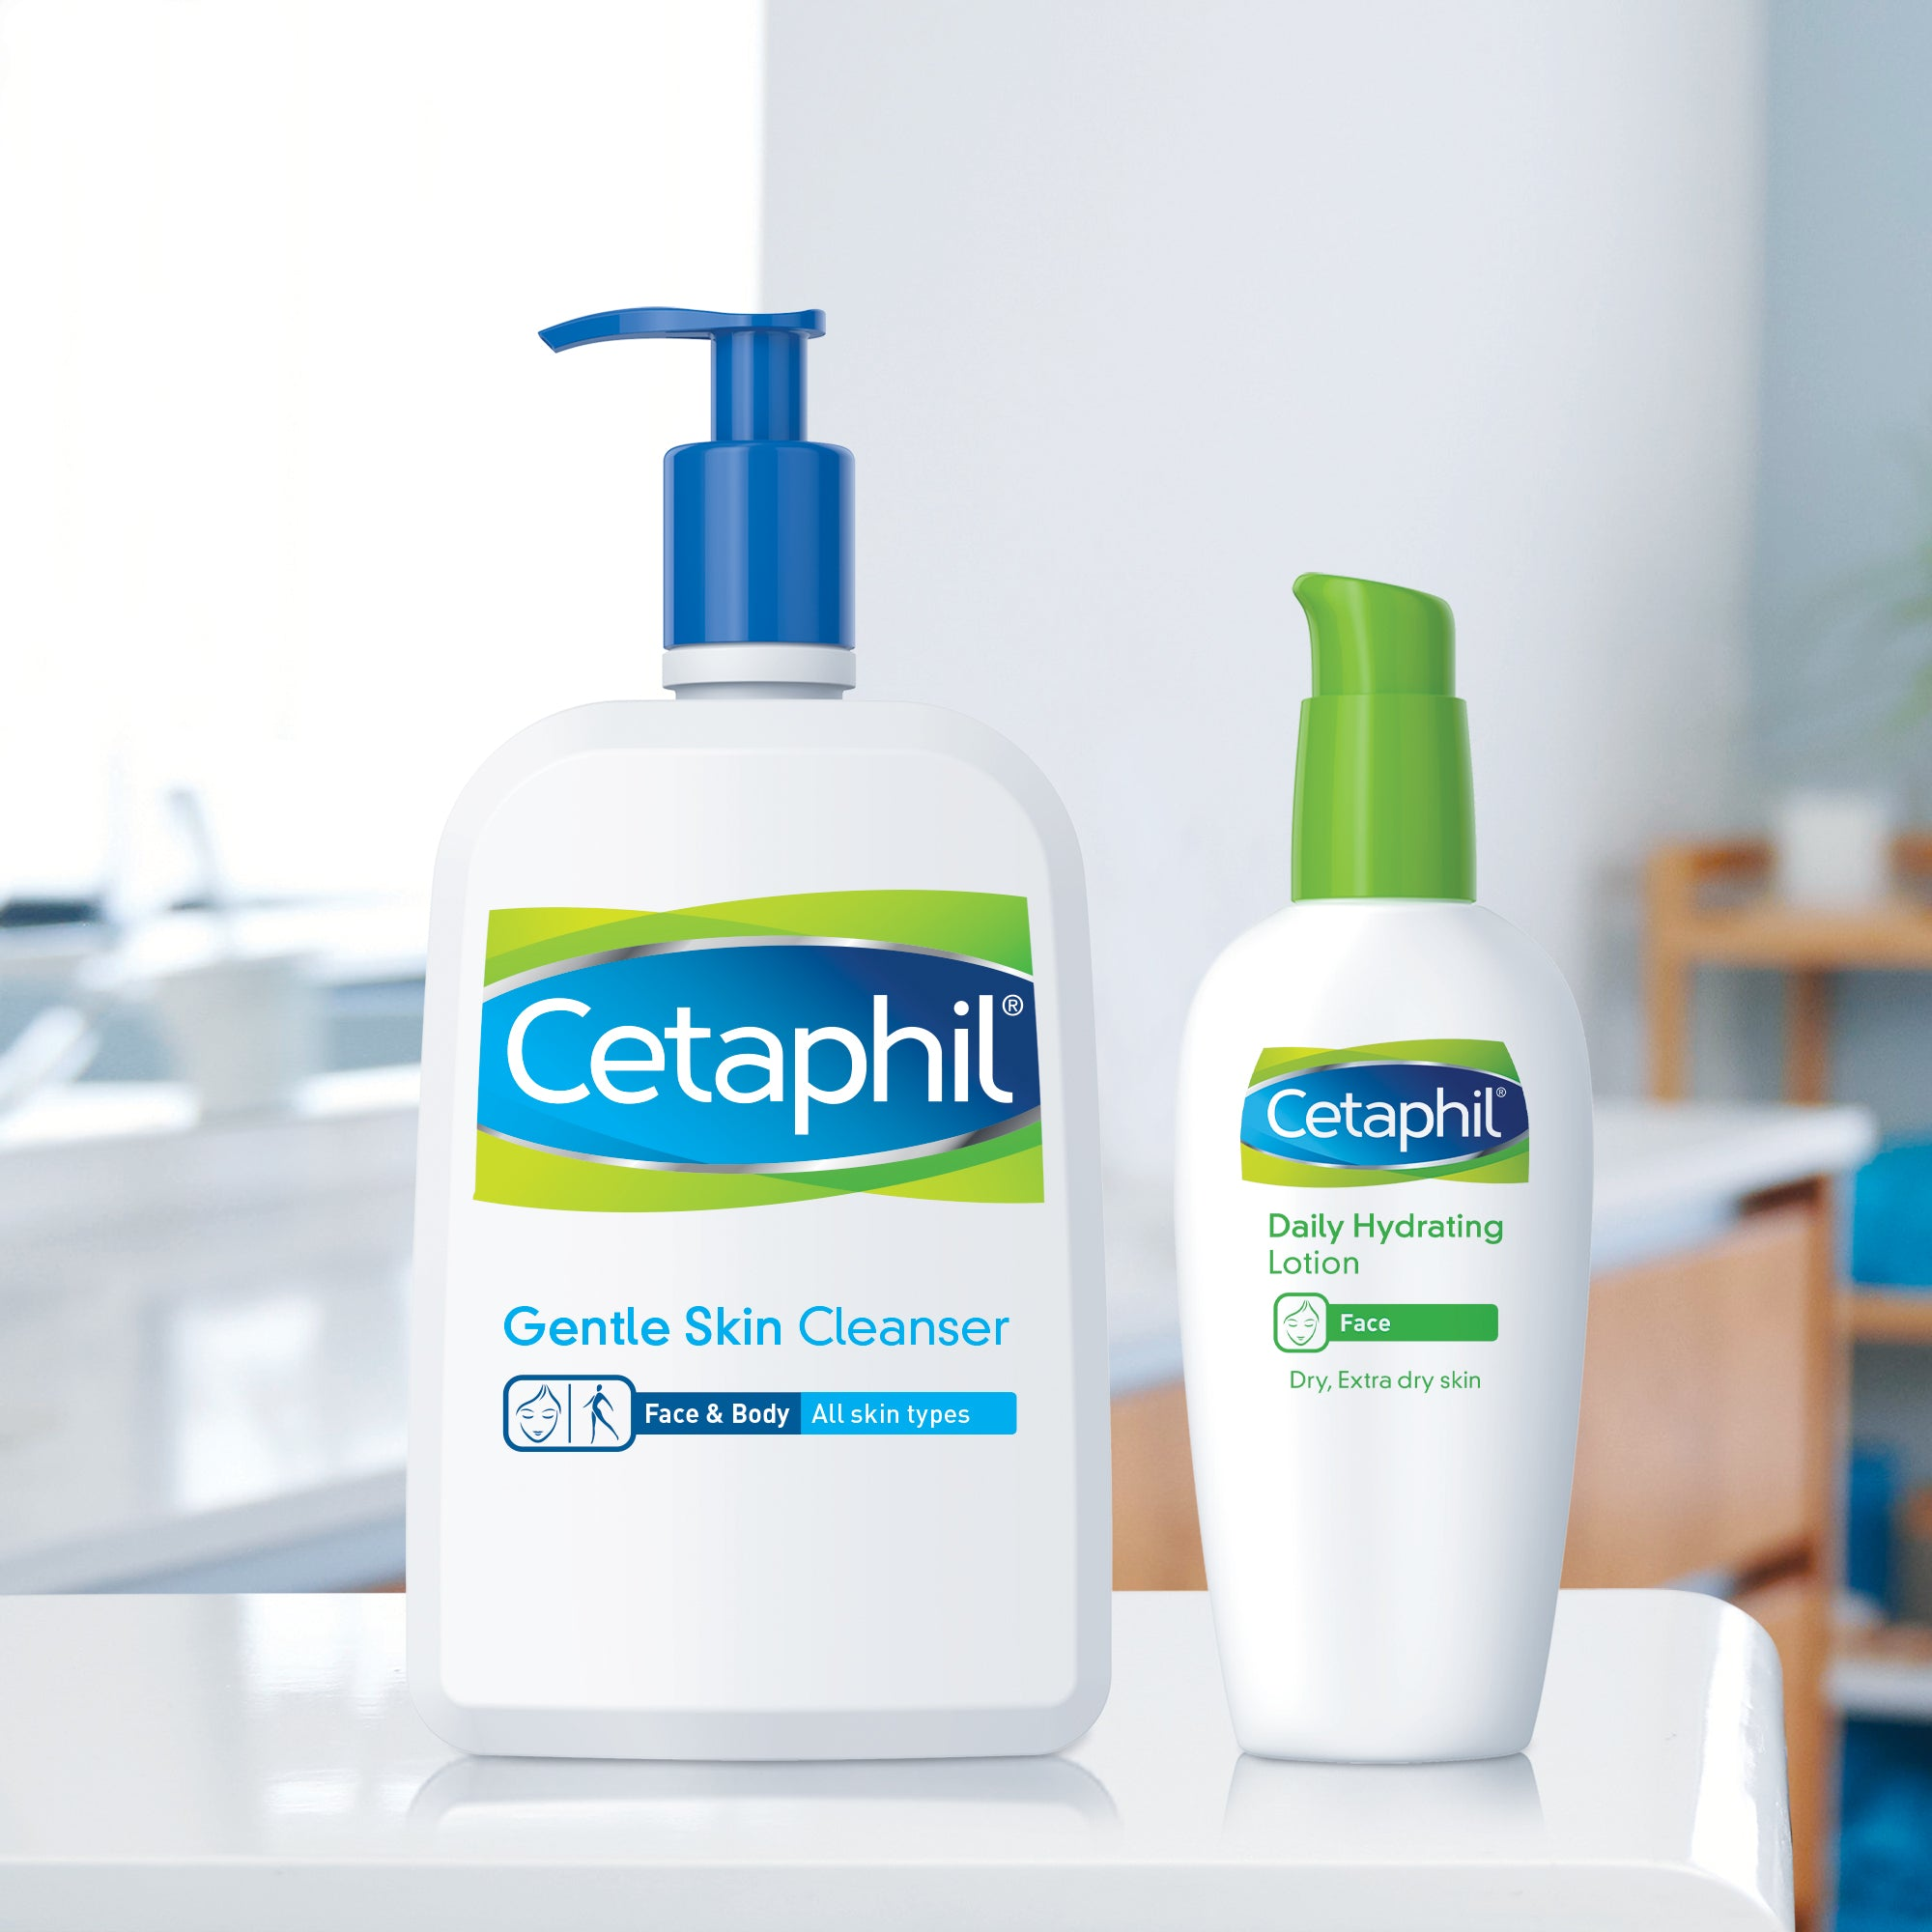 Cetaphil Gentle Skin Cleanser, Hydrating Face Wash & Body Wash, Ideal for Sensitive, Dry Skin, Fragrance-Free, 8 fl oz